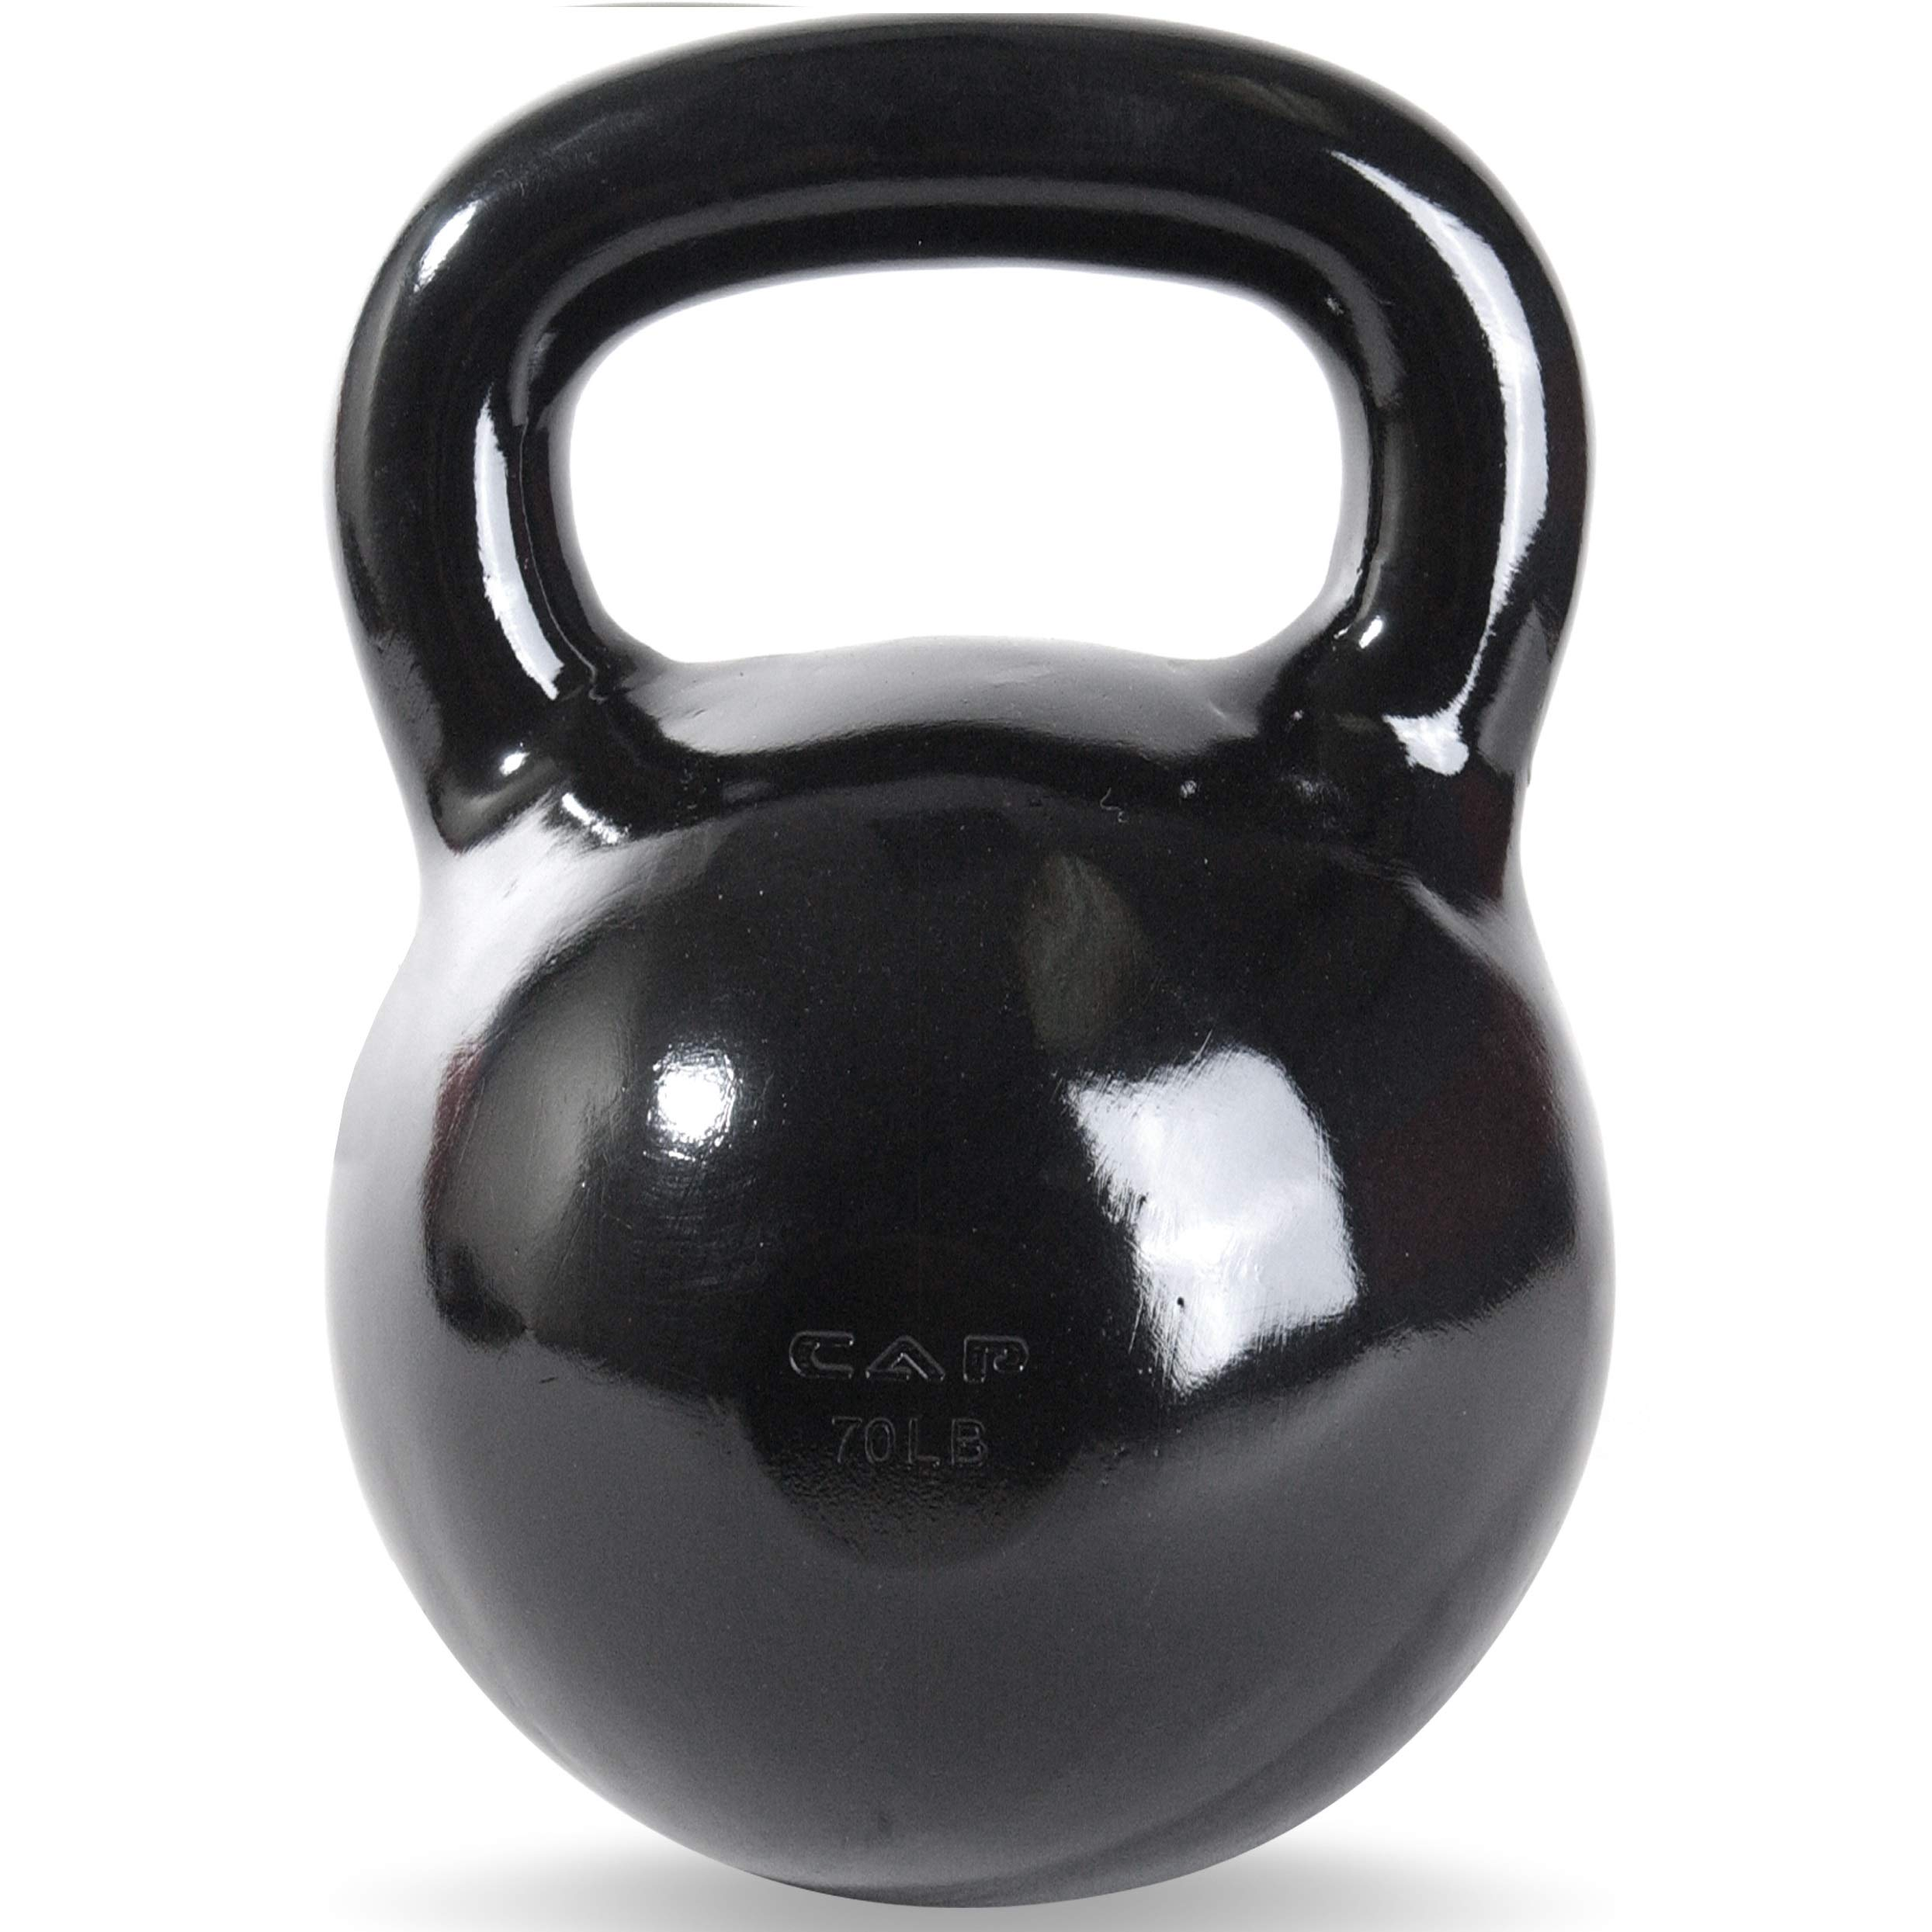 CAP Barbell Black Powder Coated Cast Iron Kettlebell, 70-Pound